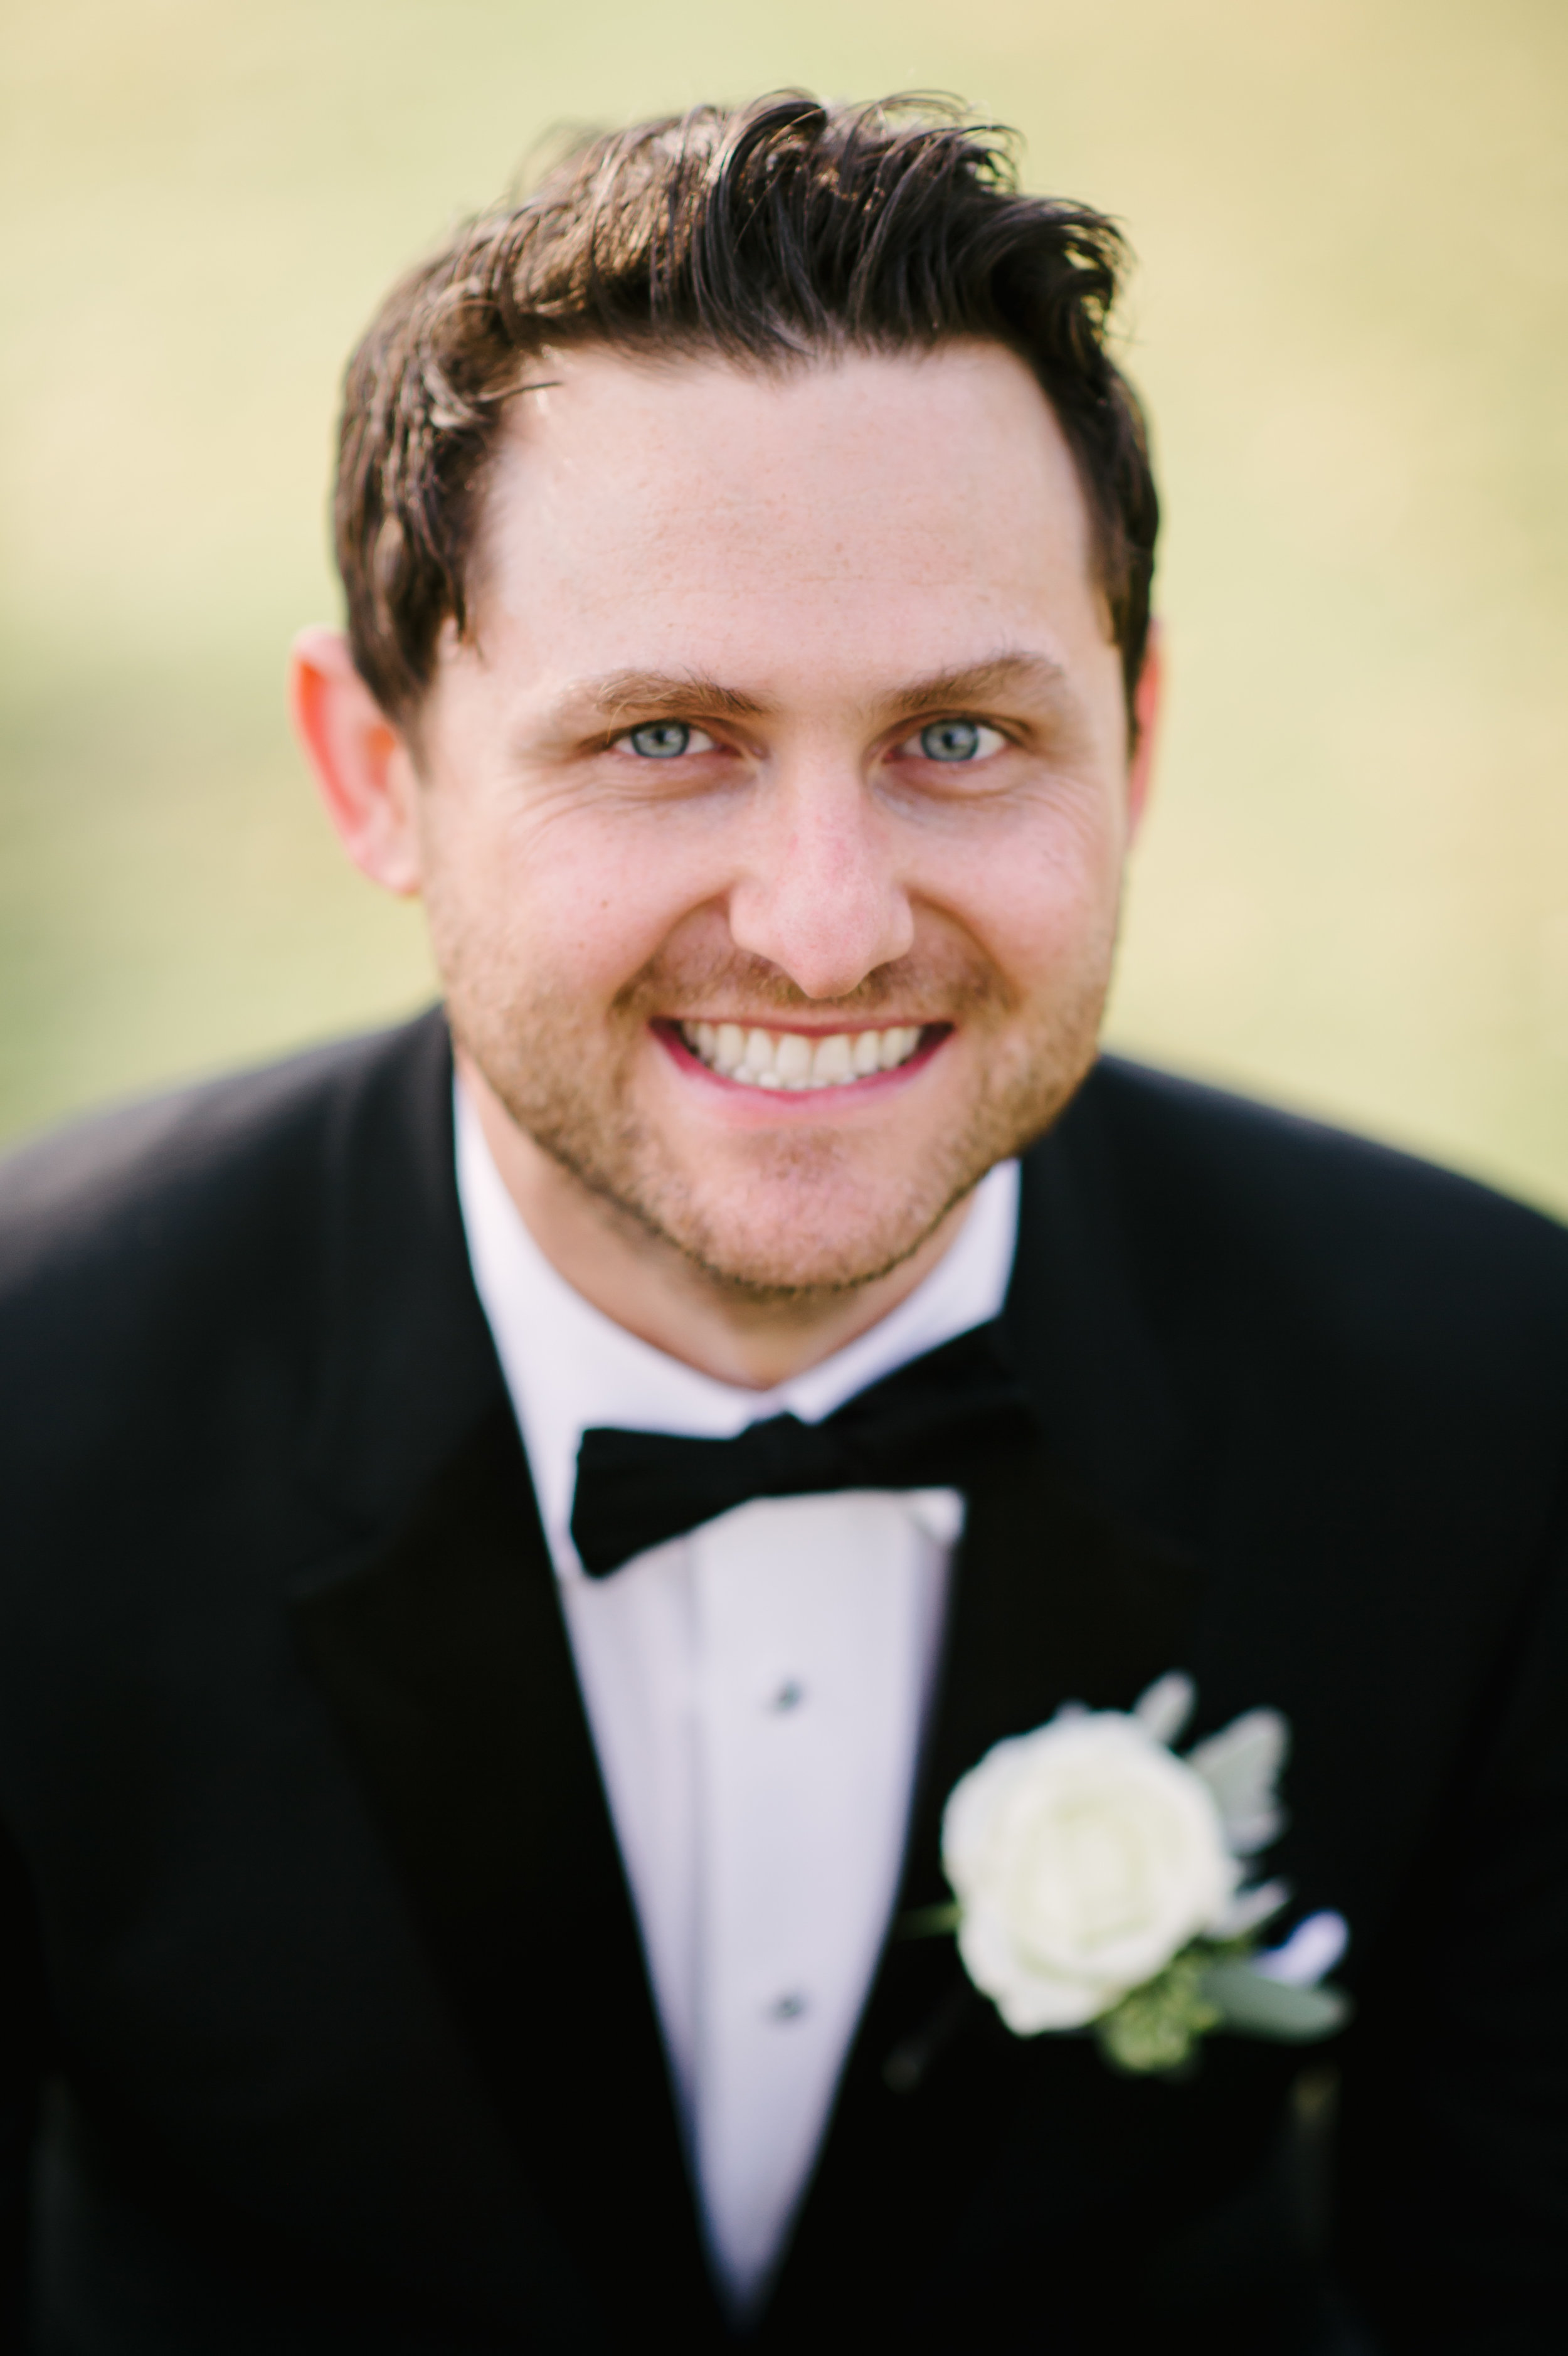 The groom sported a black tux accented with an ivory garden rose boutonniere.